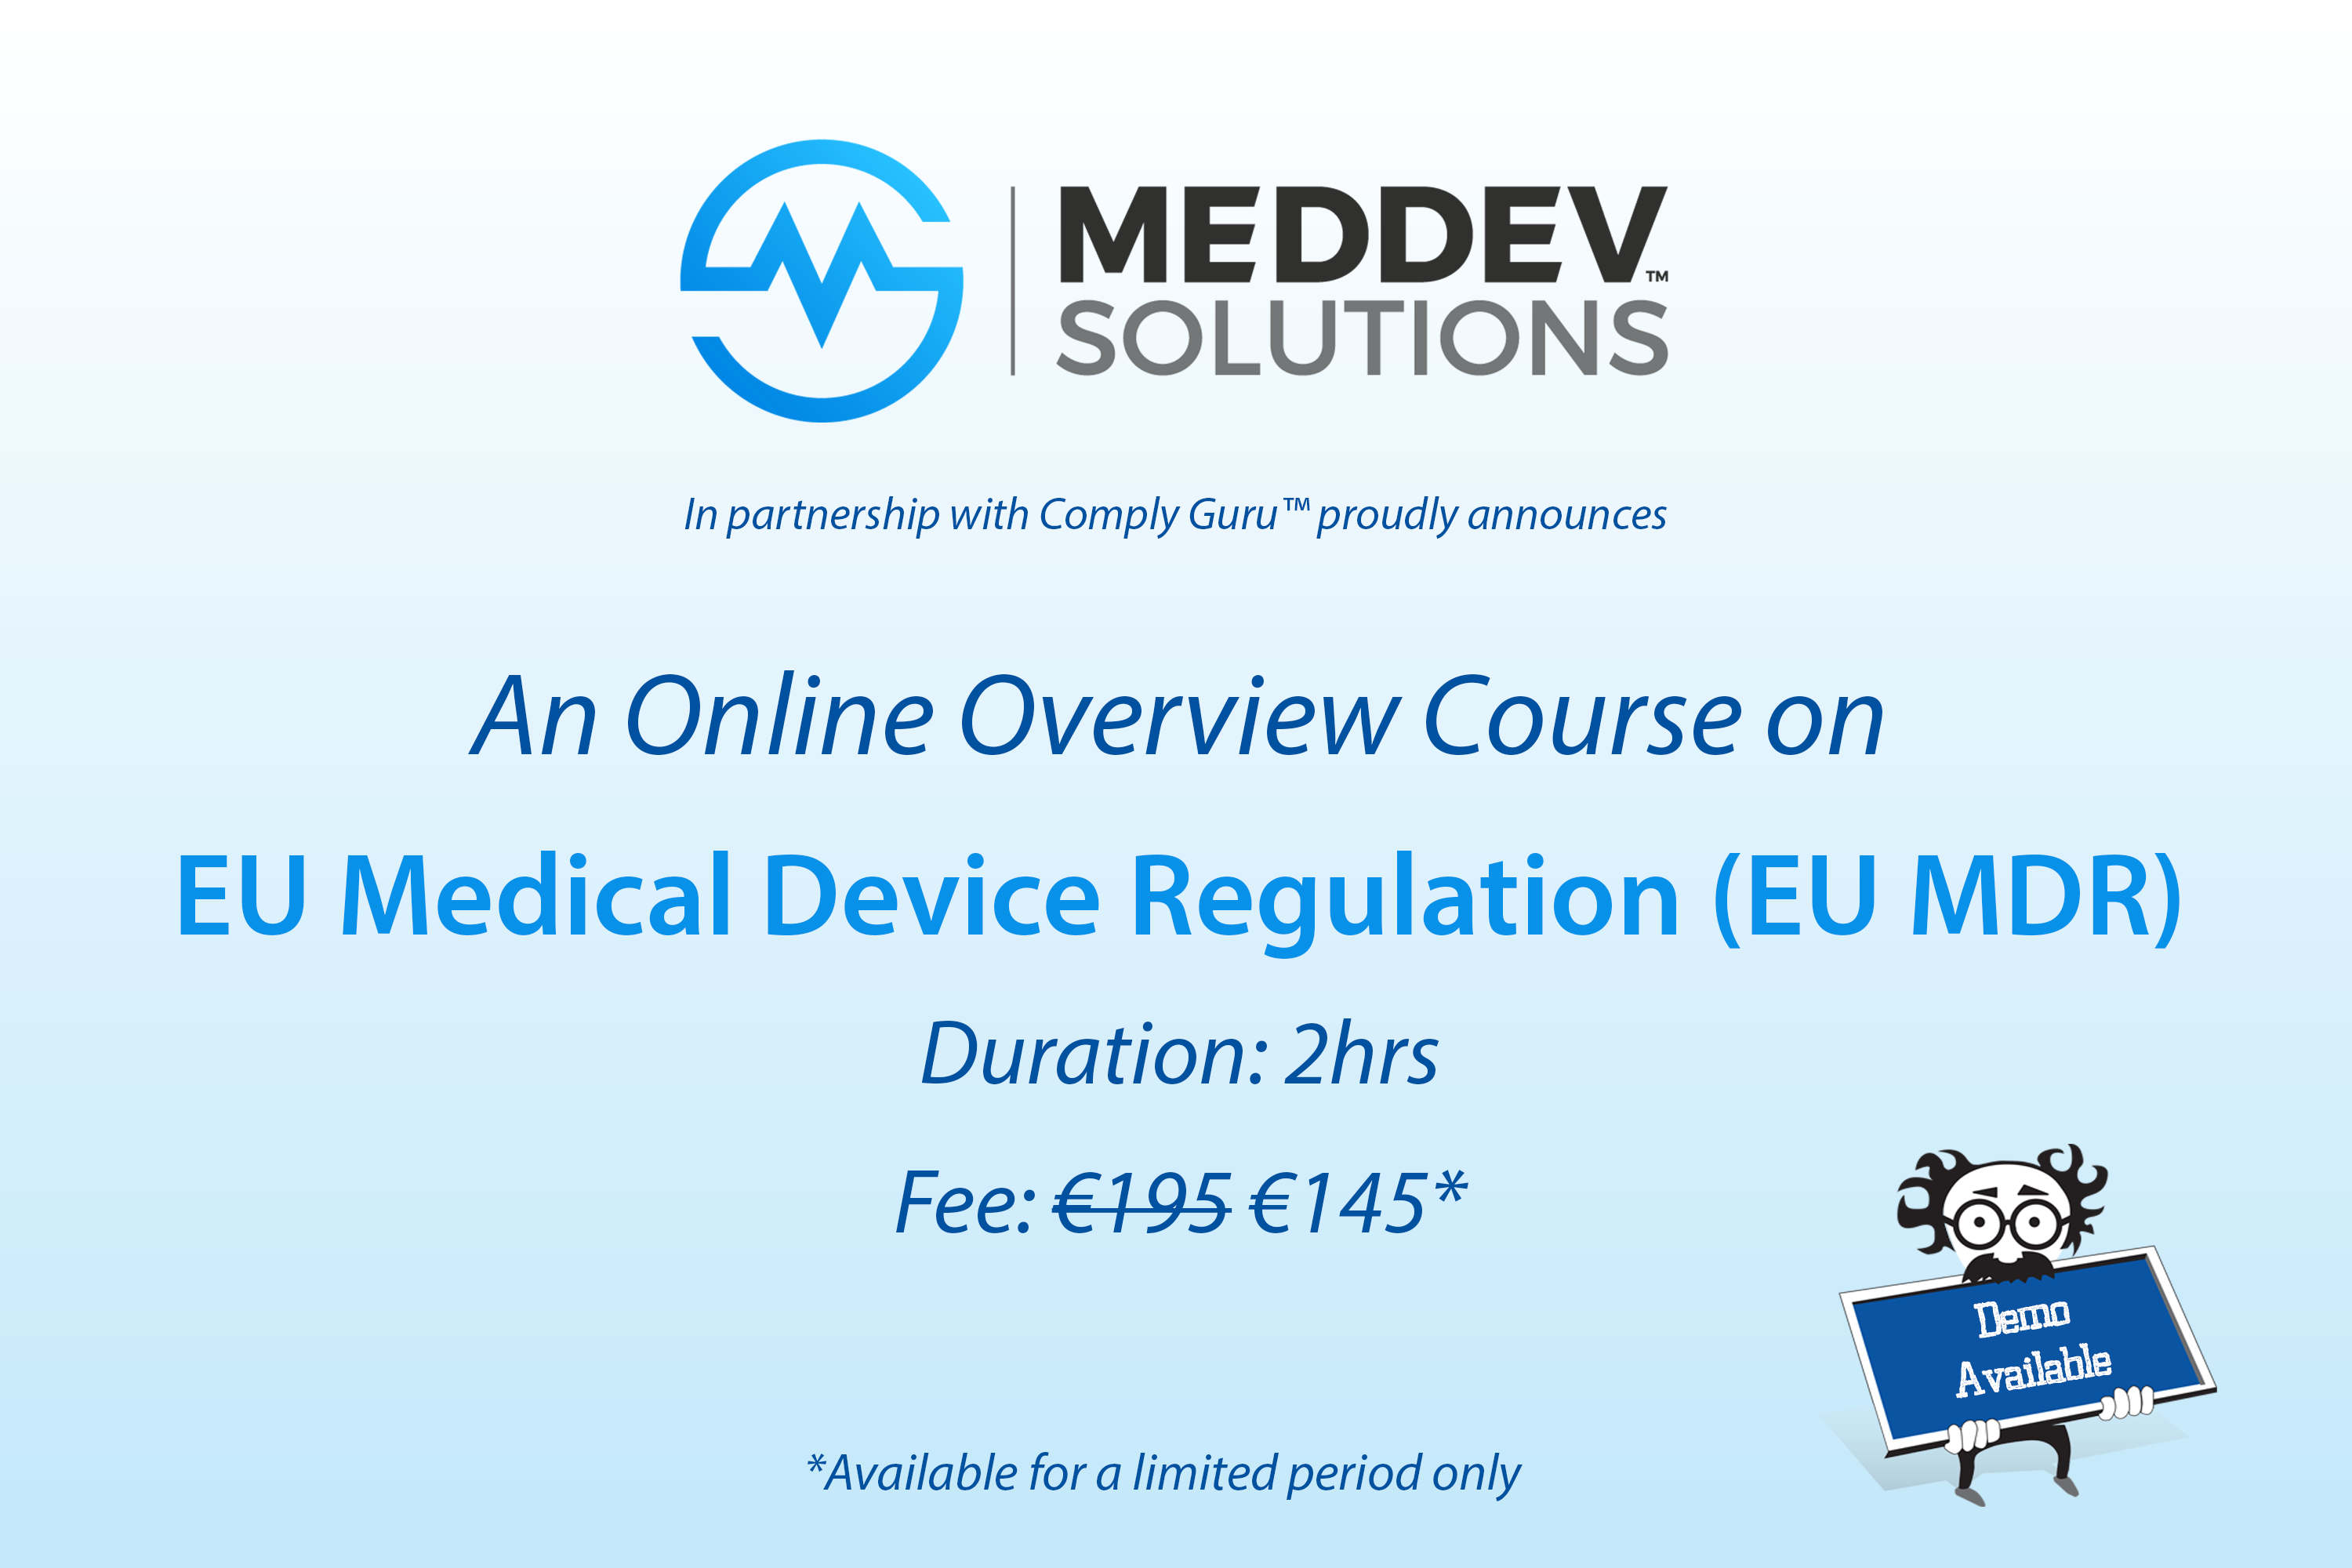 Wow! An Online Overview of the EU MDR Course!